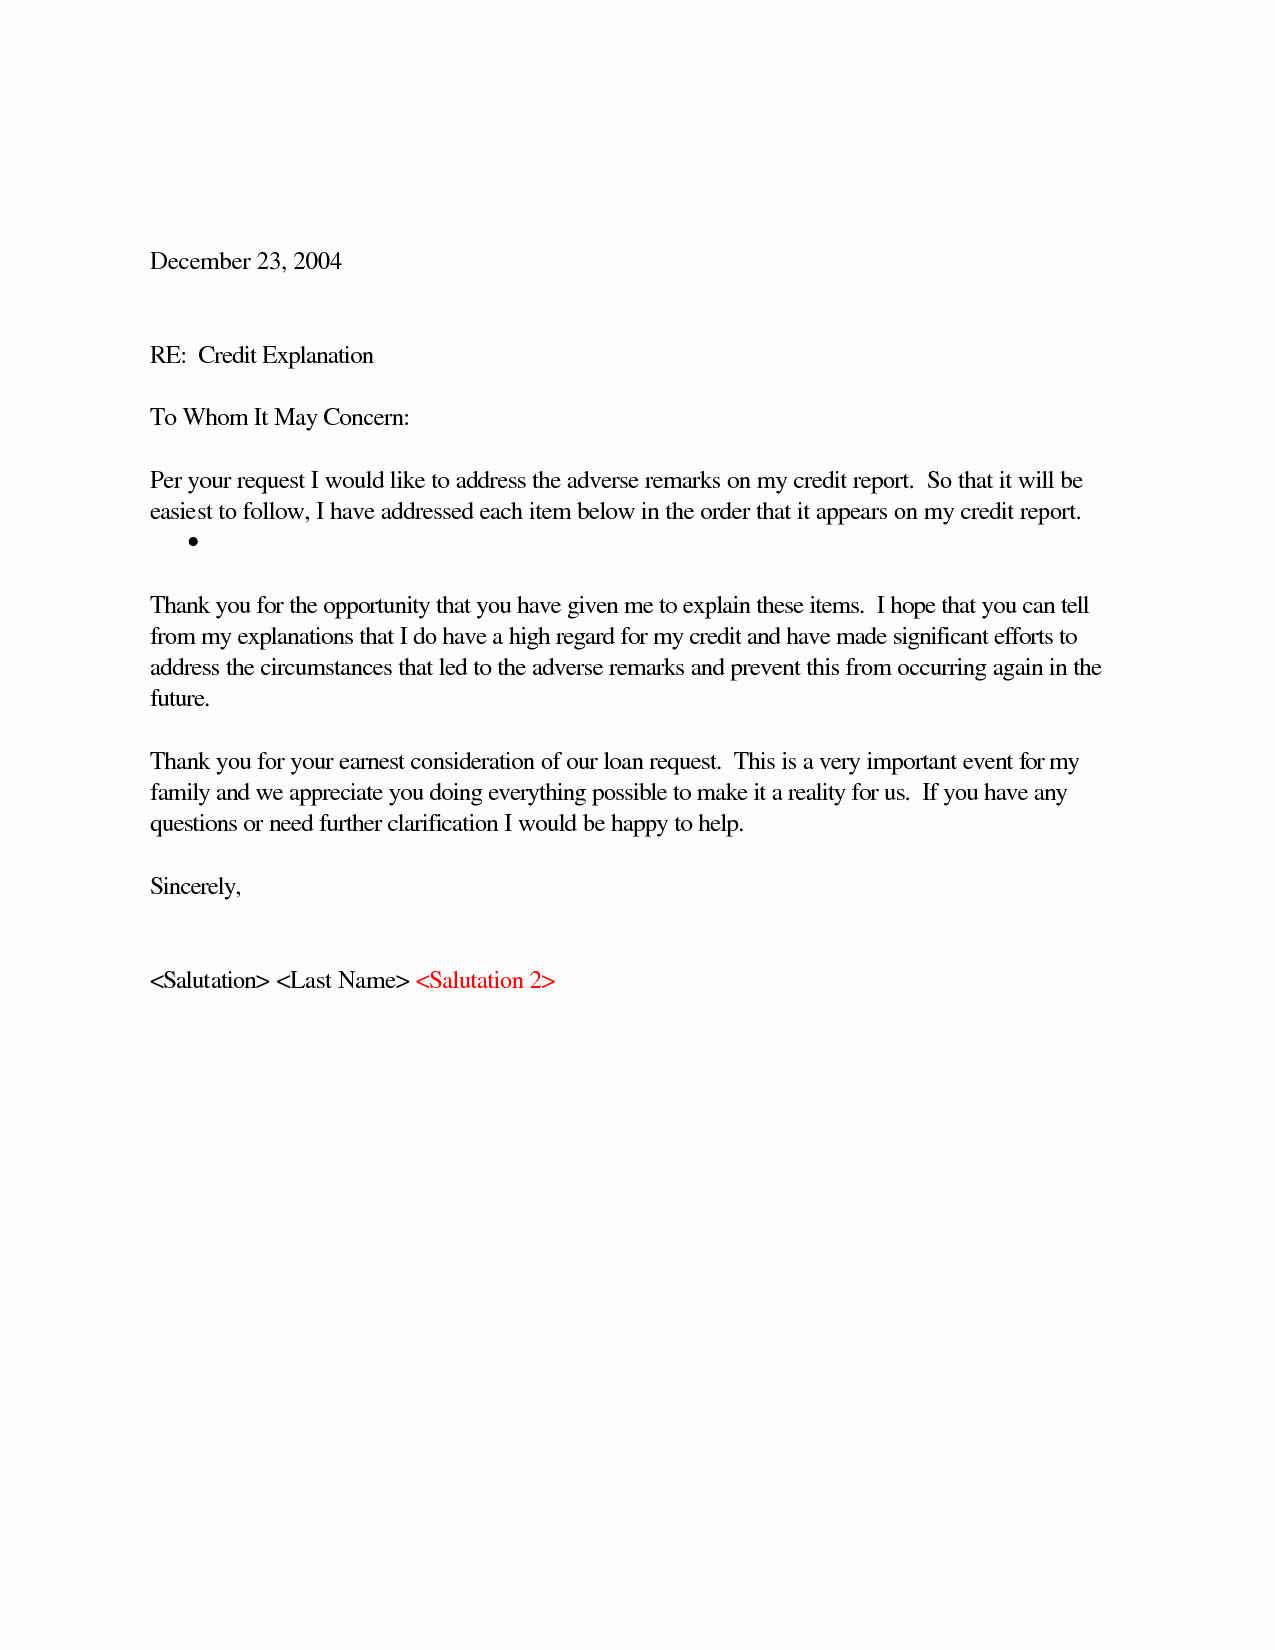 Late Payment Explanation Letter for Mortgage Awesome Letter Explanation